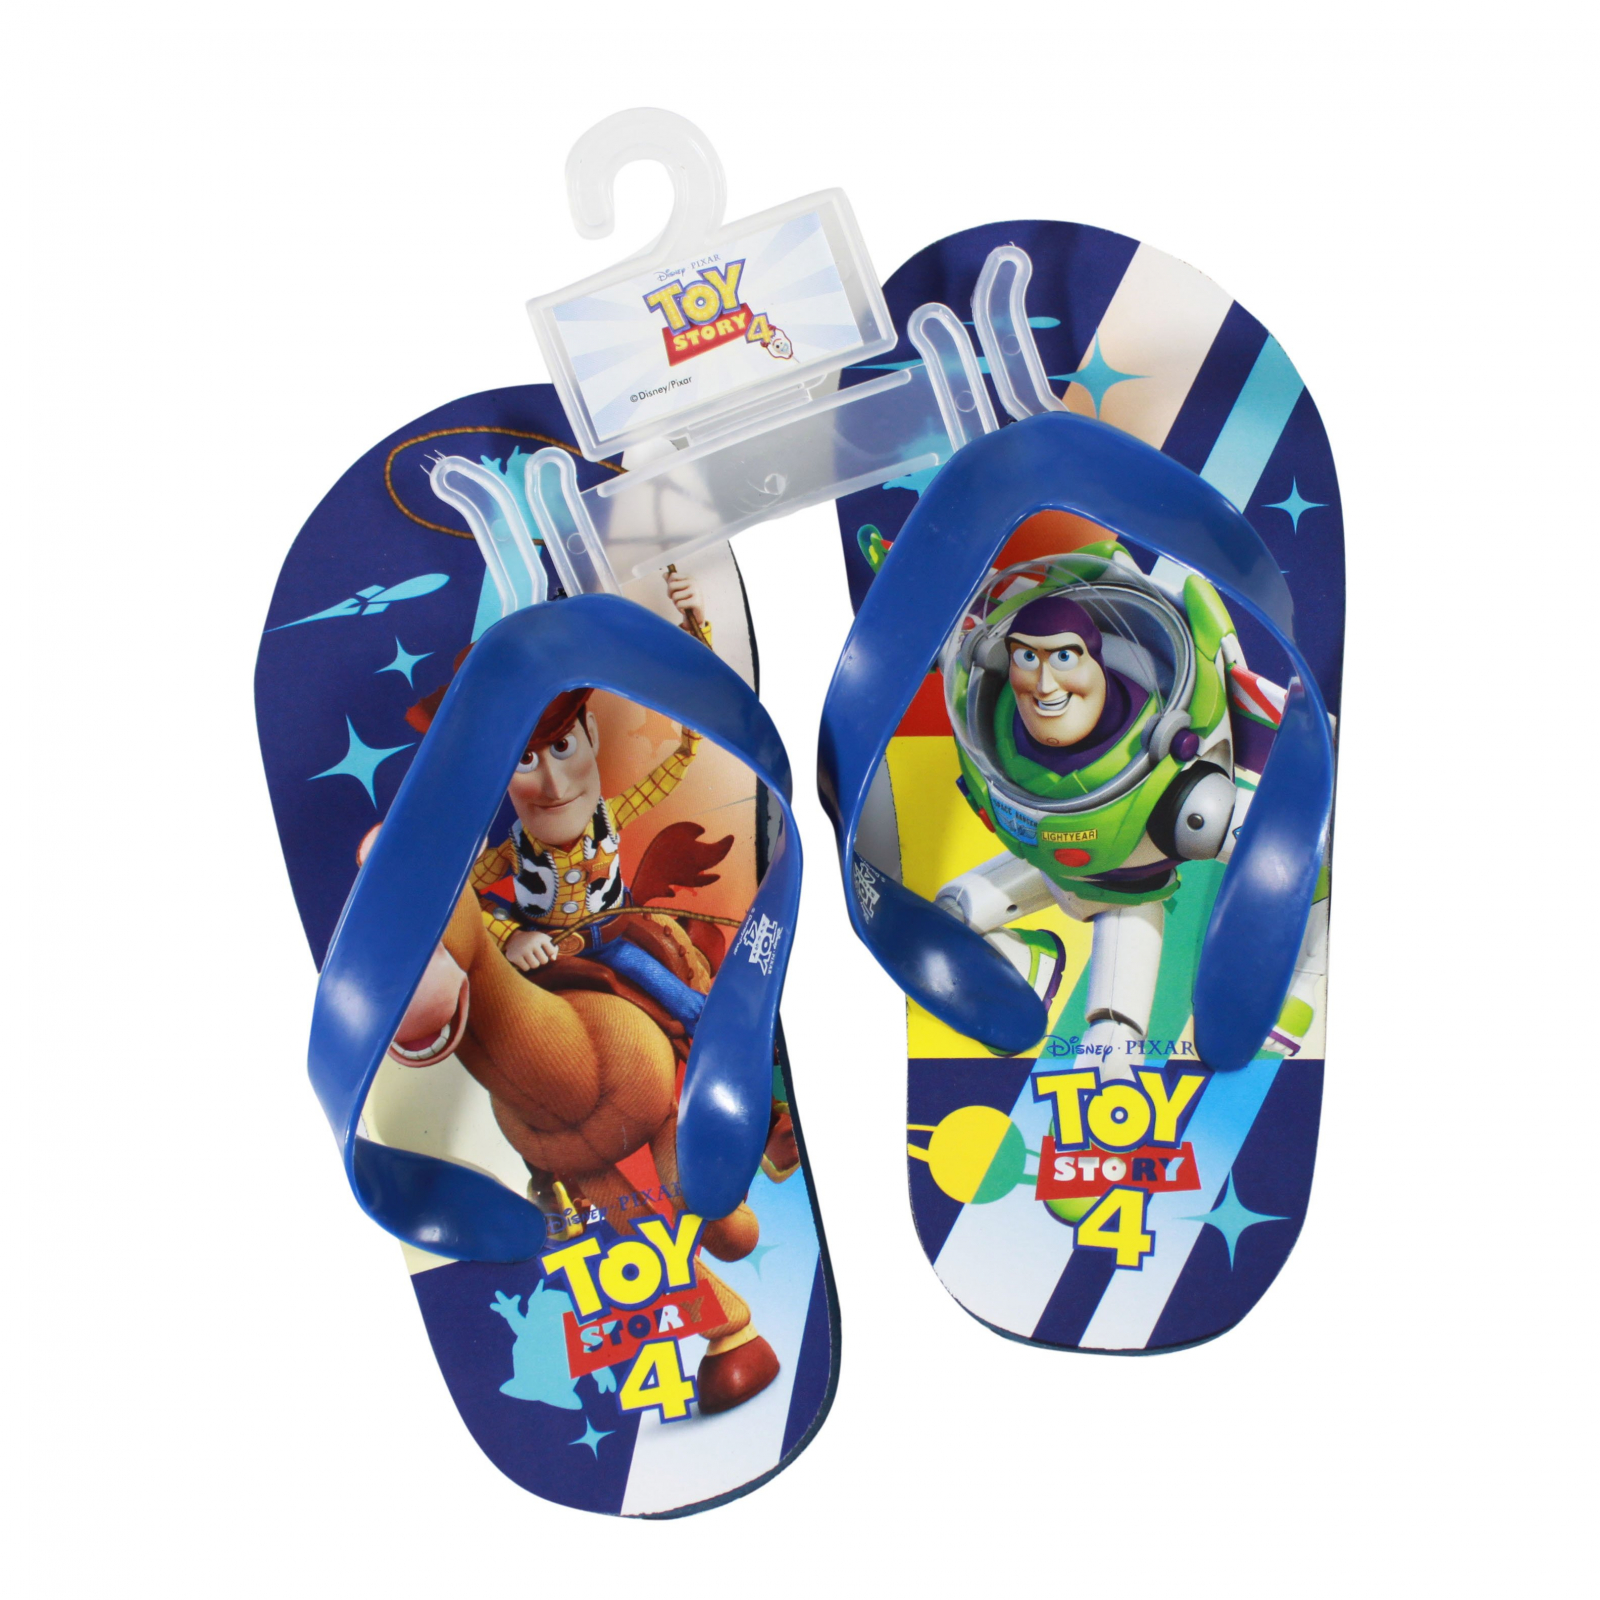 Disney Pixar Toy Story 4 Kids Sandals Blue Strap Small 11/12